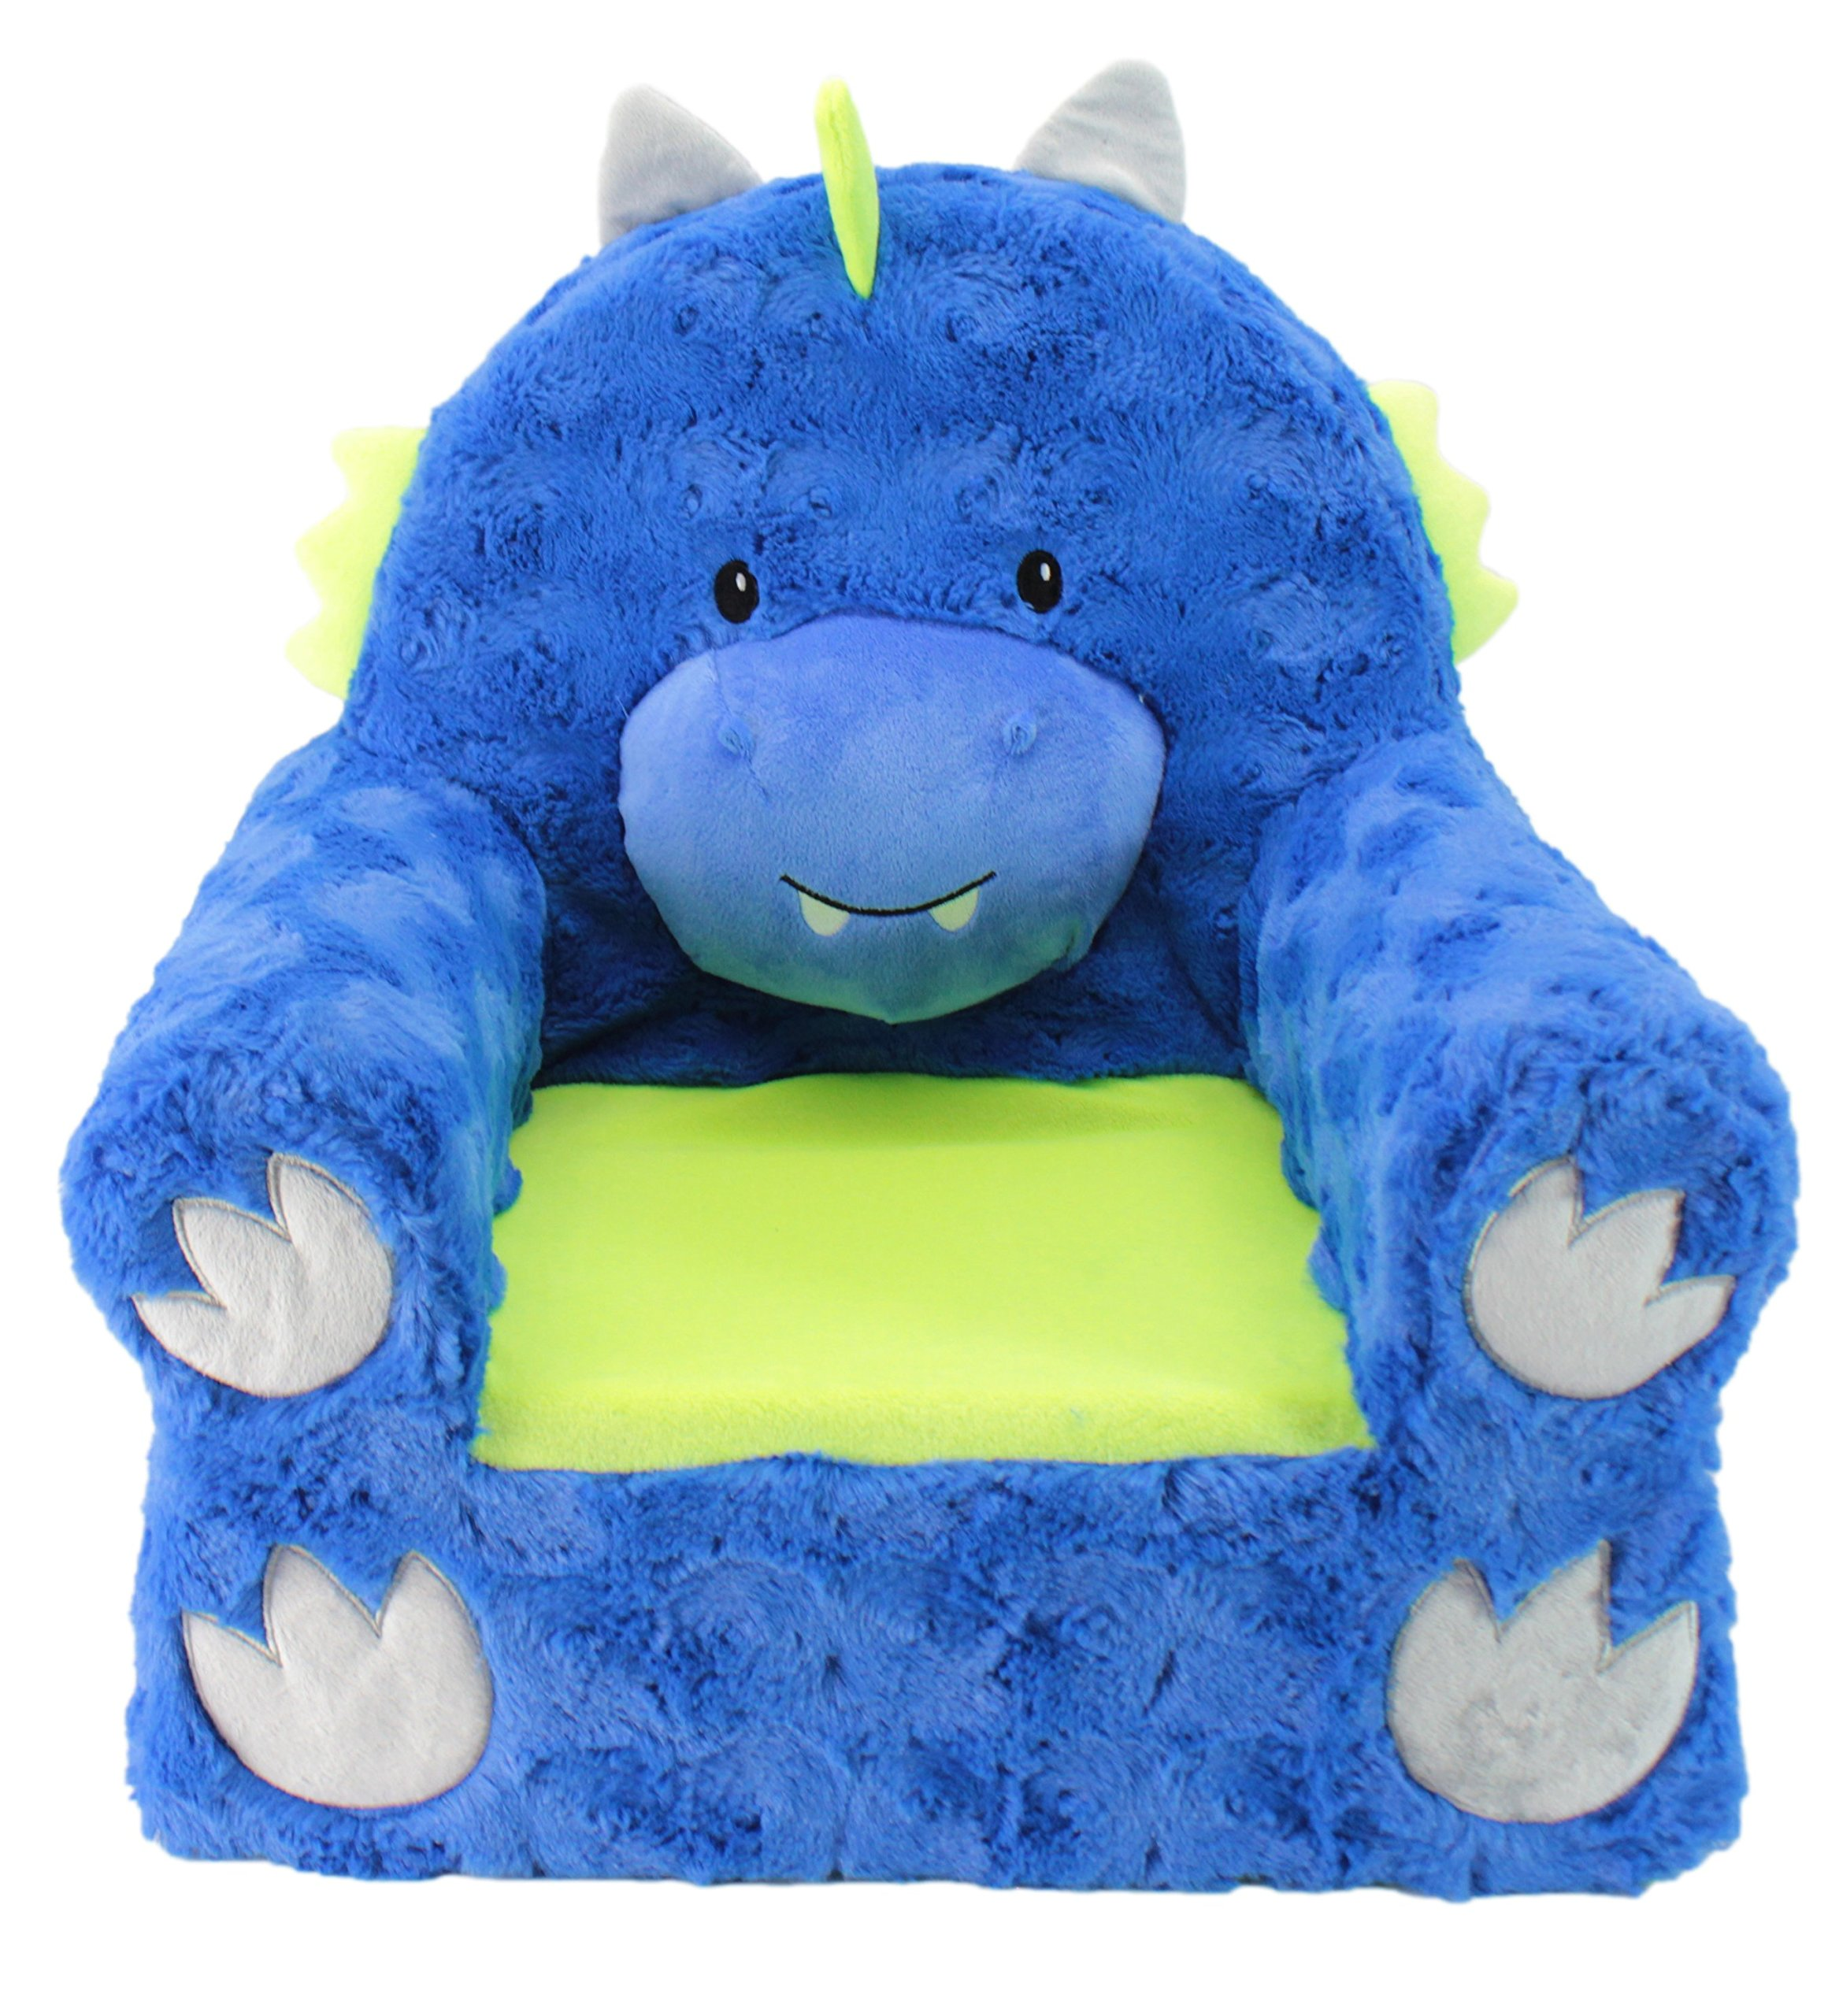 Sweet Seats | Blue Dragon Children's Chair | Large Size | Machine Washable Cover